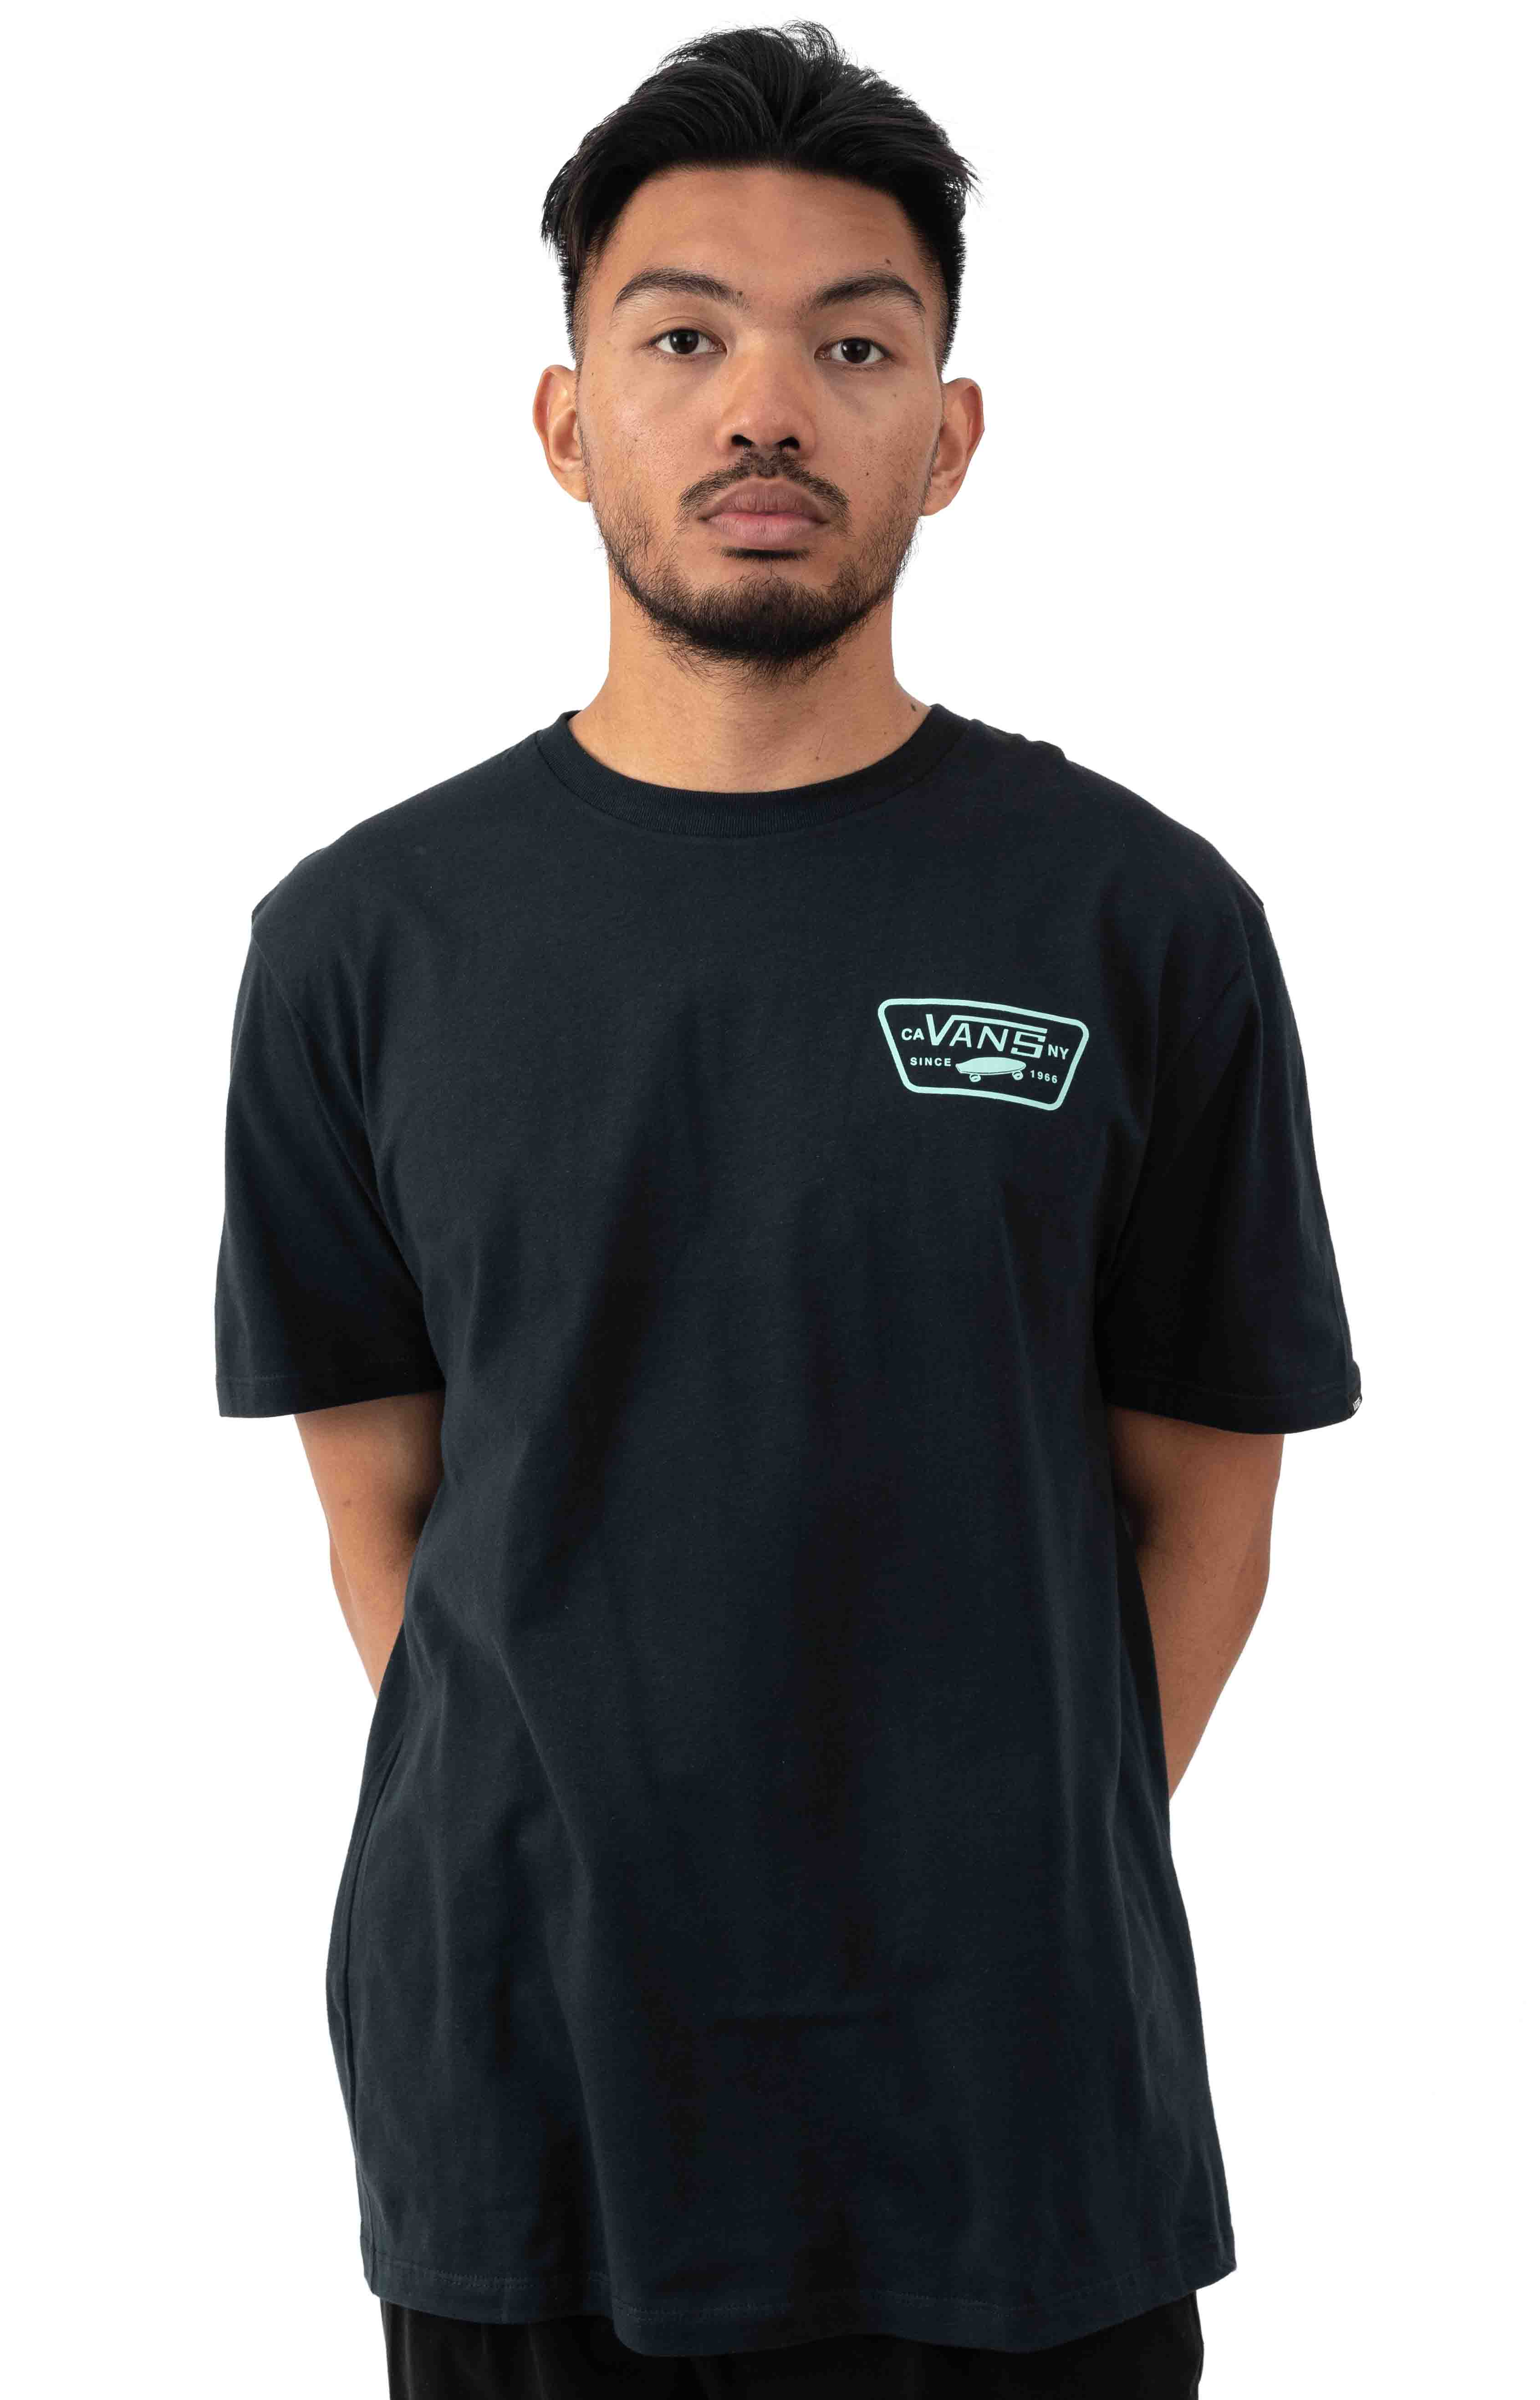 Full Patch Back T-Shirt - Black/Dusty Jade  2